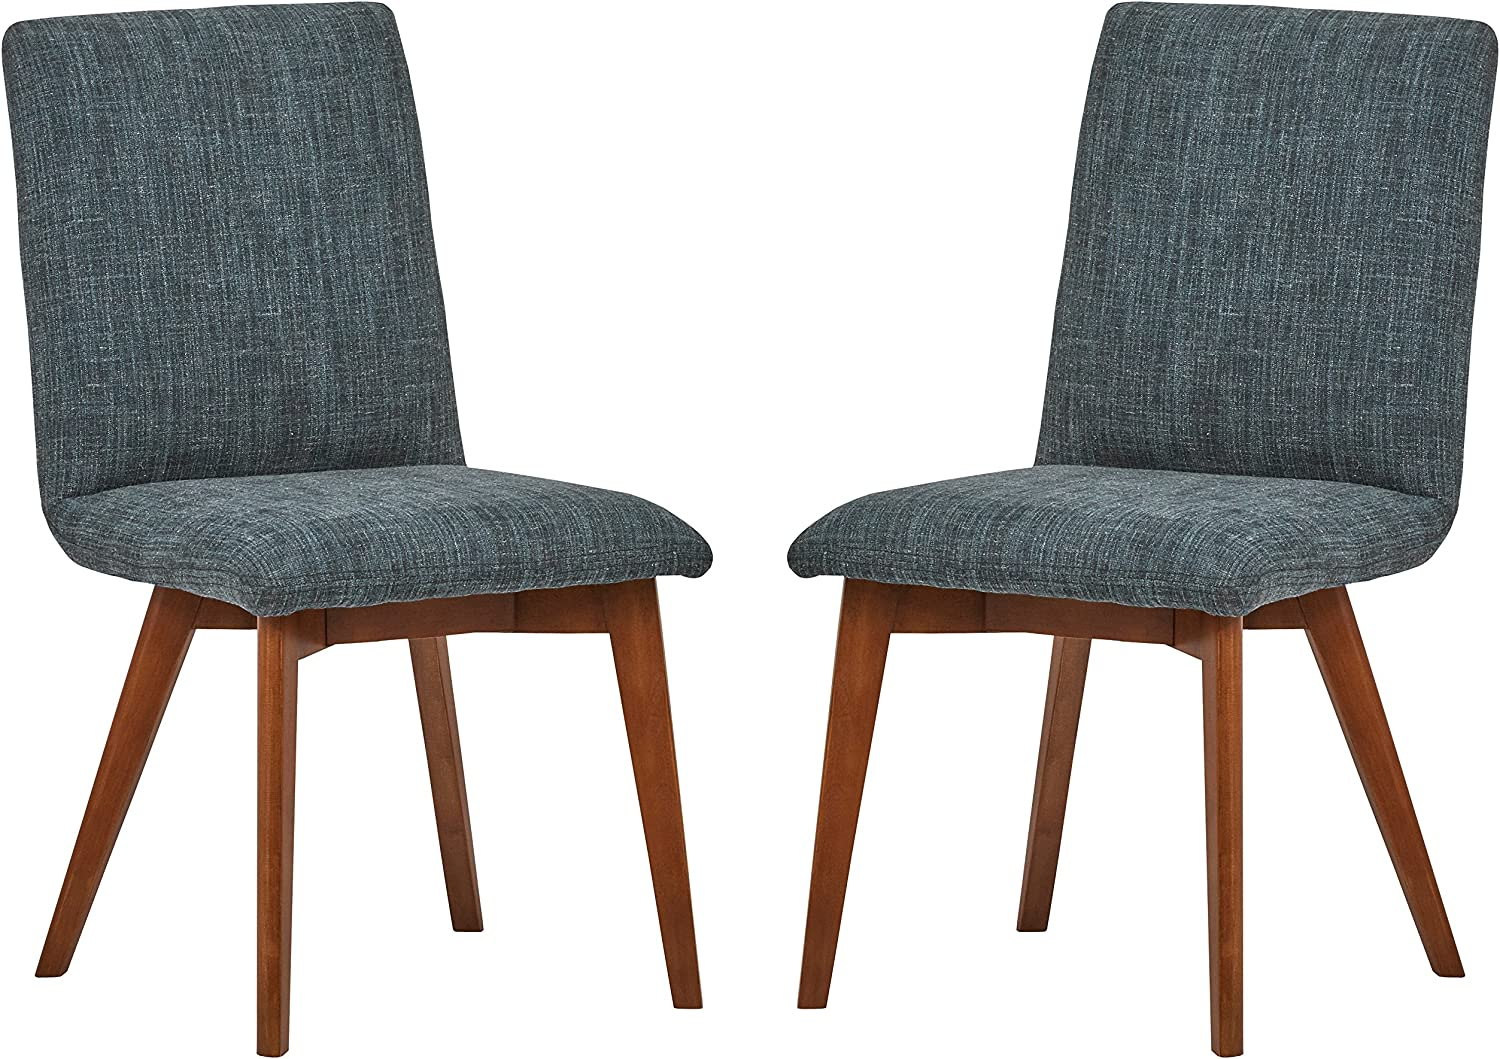 Amazon Brand – Rivet Ricky Mid-Century Modern Set of 2 Kitchen Dining Room Table Chairs, 37 Inch Height, Marine Blue